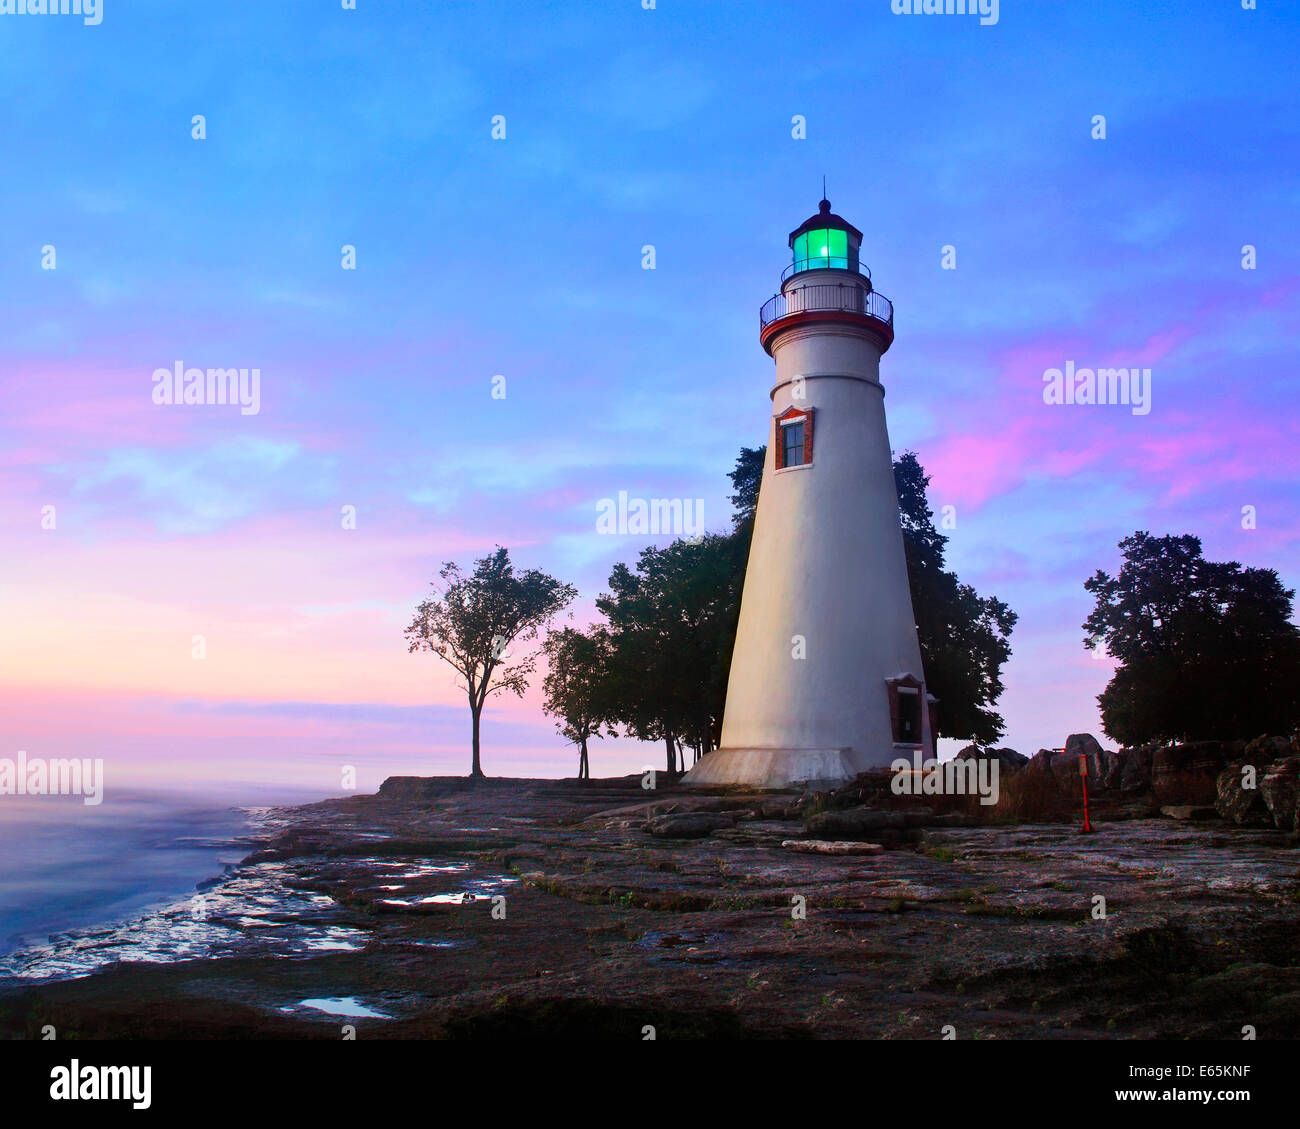 The Marblehead Lighthouse Radiates It's Green Light As The Sun Warms The Eastern Sky At Marblehead Ohio On Lake - Stock Image